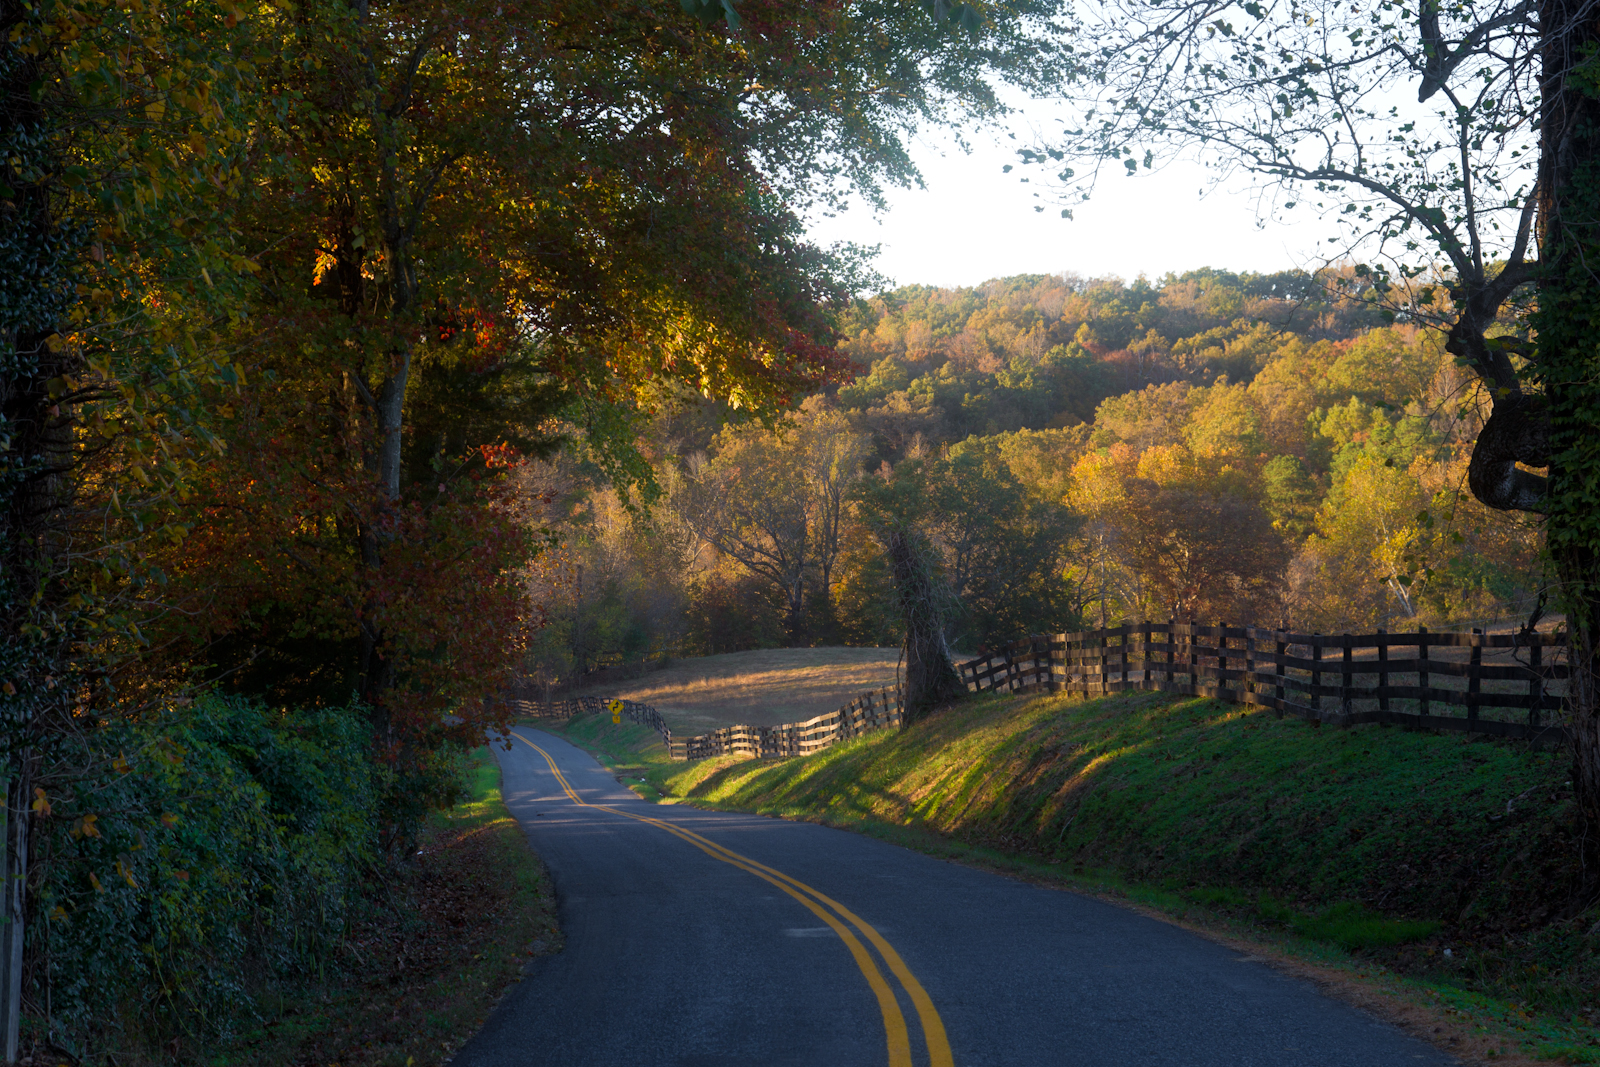 Autumn-country-road-50-of-1-3